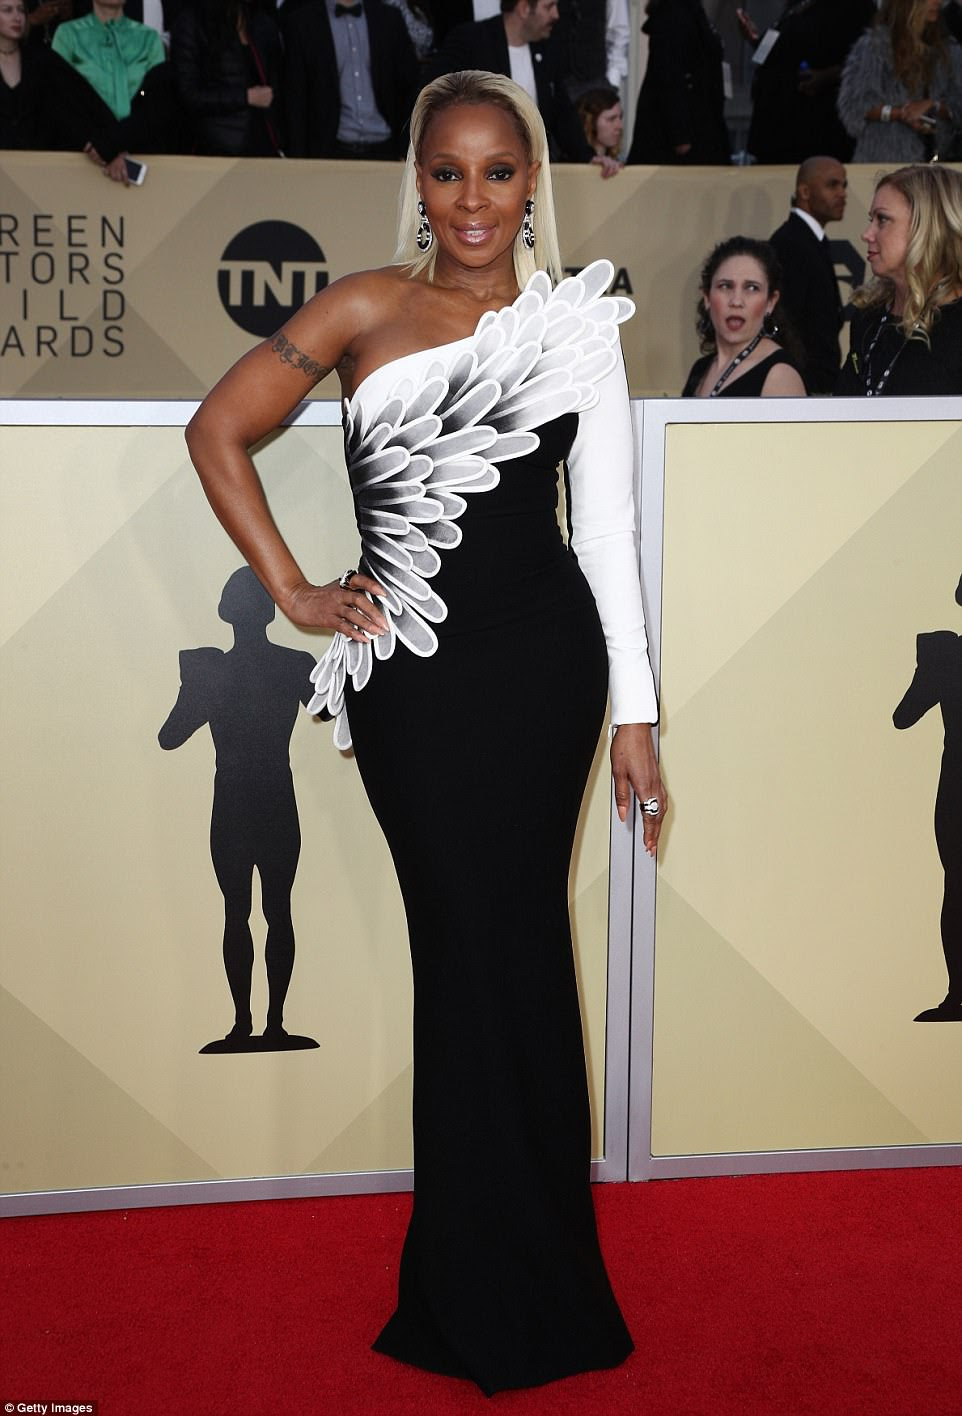 High flyer? Mary J. Blige looked as if she was about to take flight in this weird winged outfit